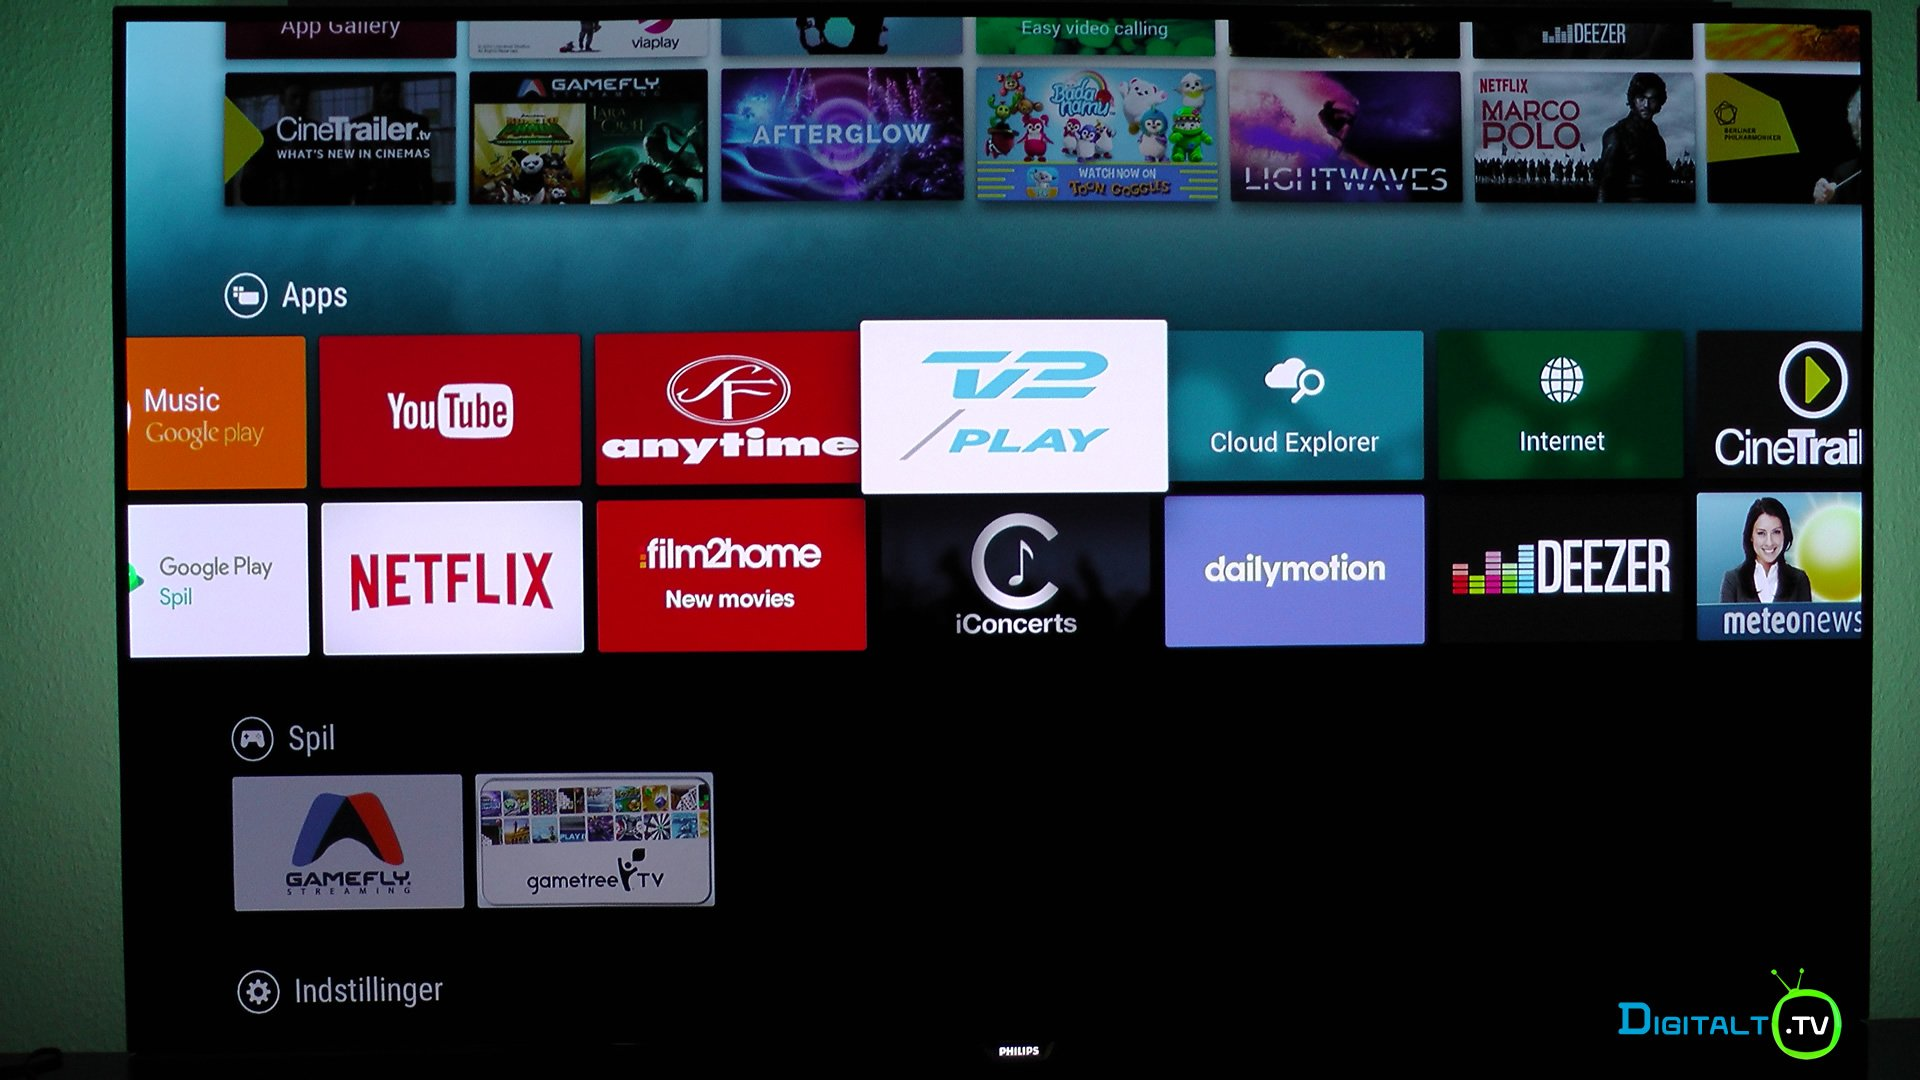 Philips 55POS901F Smart TV apps